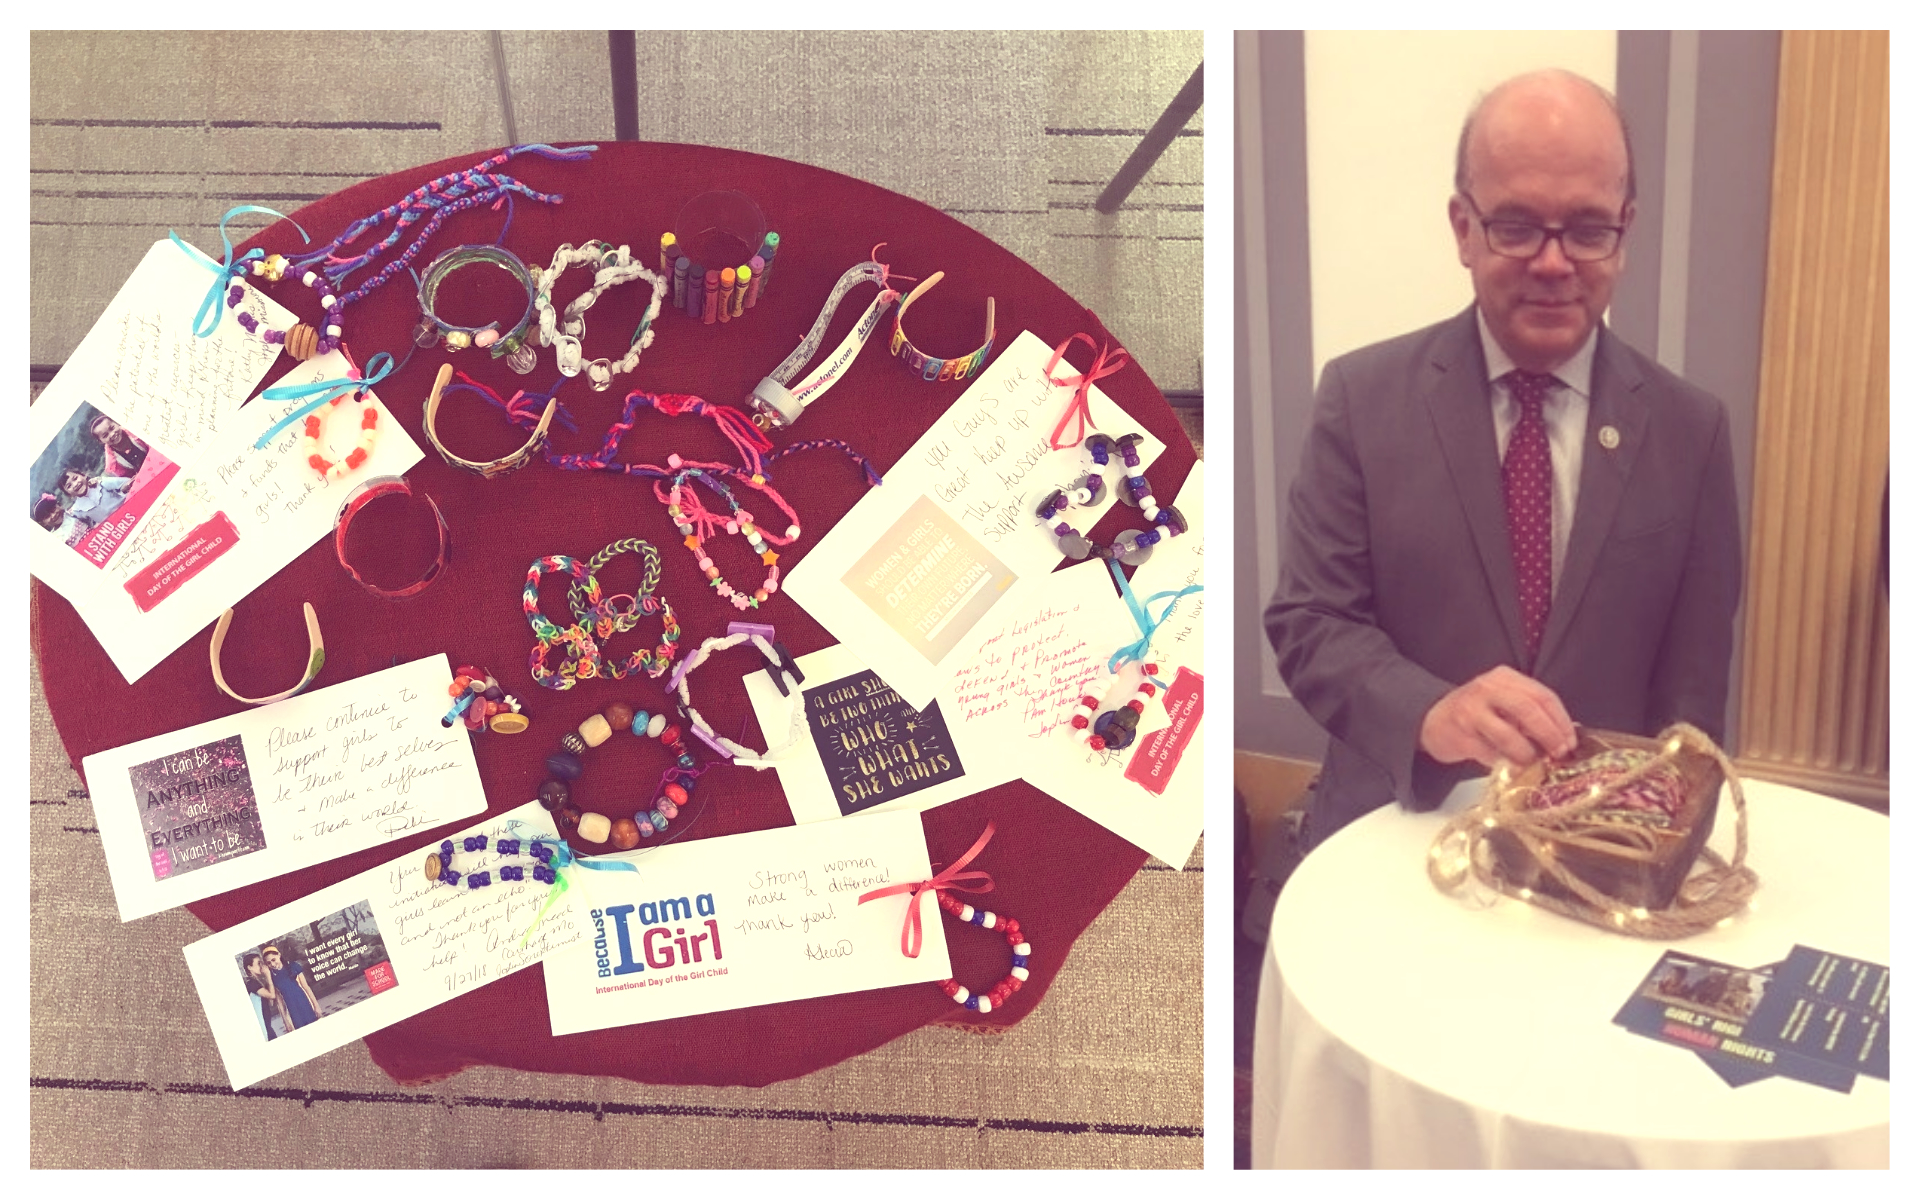 collage of bracelets and messages on table, man looking at bracelets on table